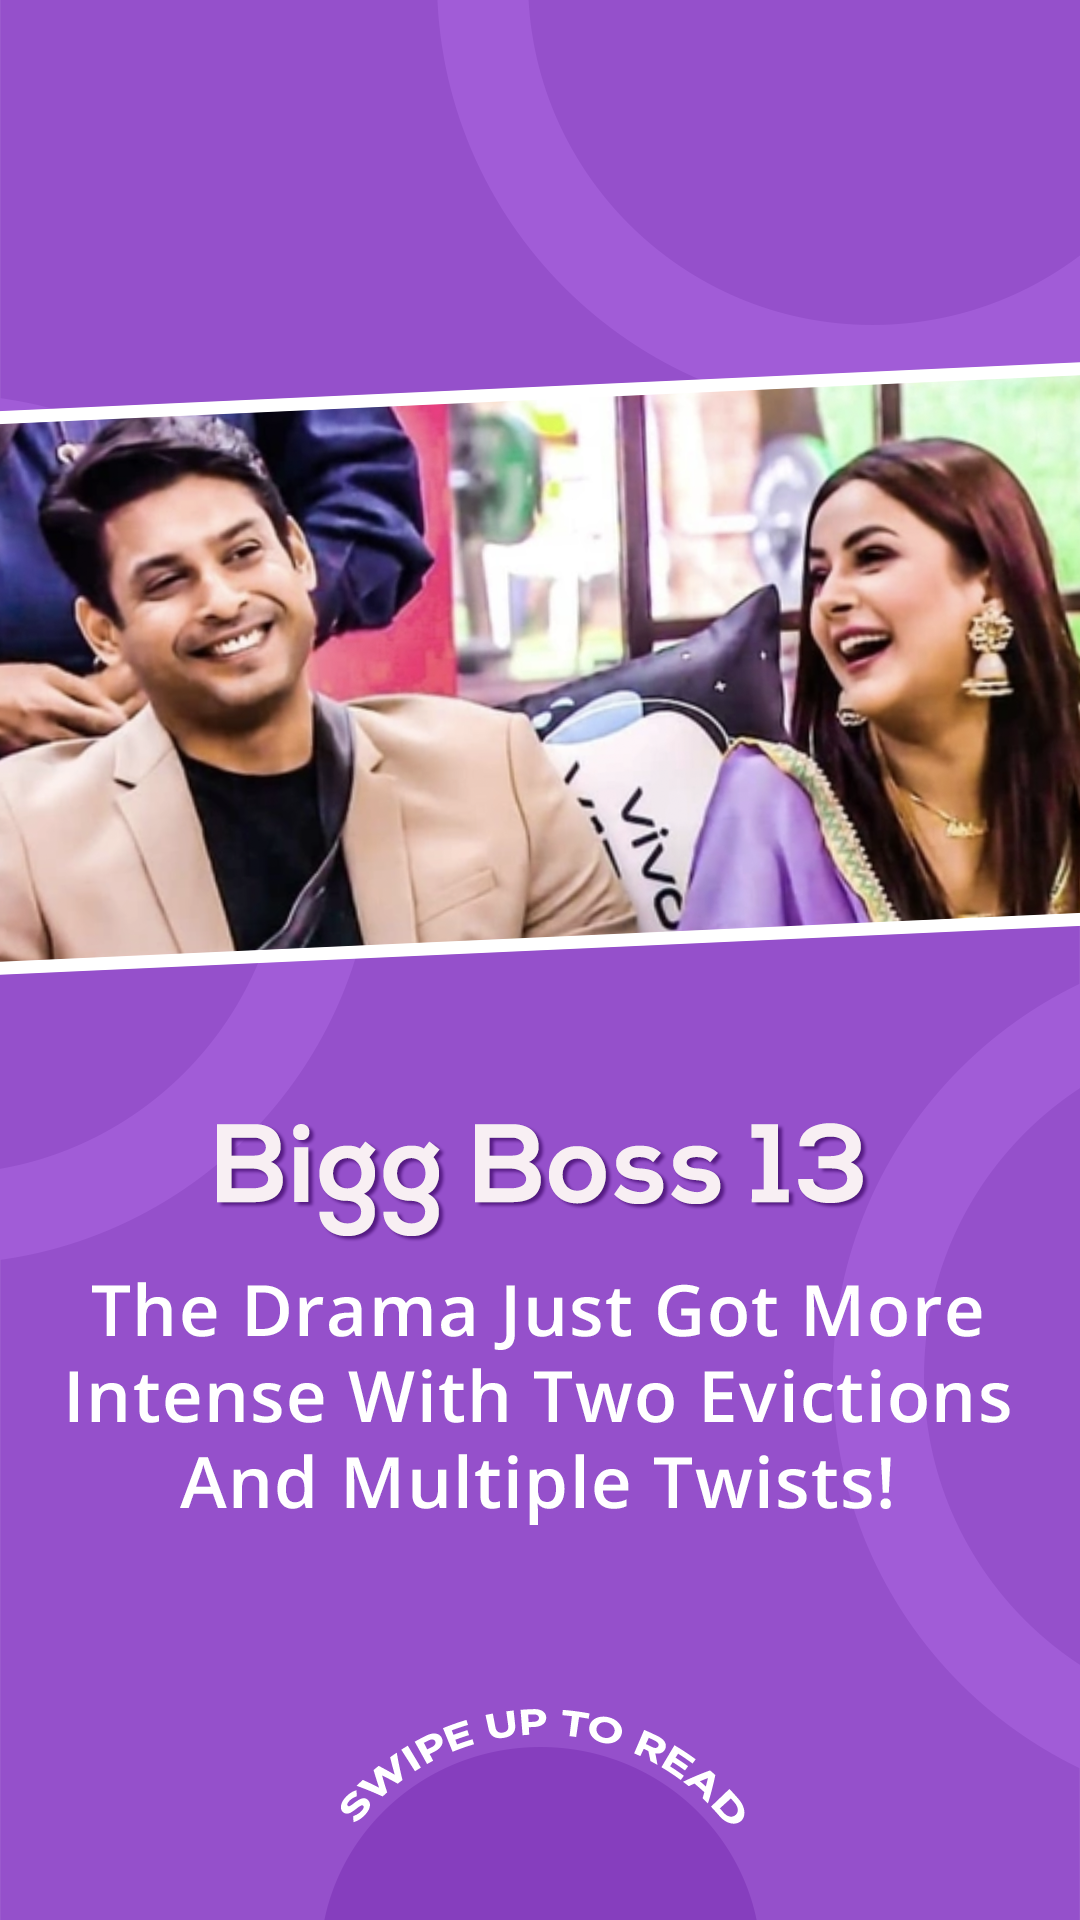 Bigg Boss 13 The Drama Just Got More Intense With Two Evictions And Multiple Twists Tvshow Mahirsharma Bigboss13 Bigboss Bigbos Boss Big Twist Twist